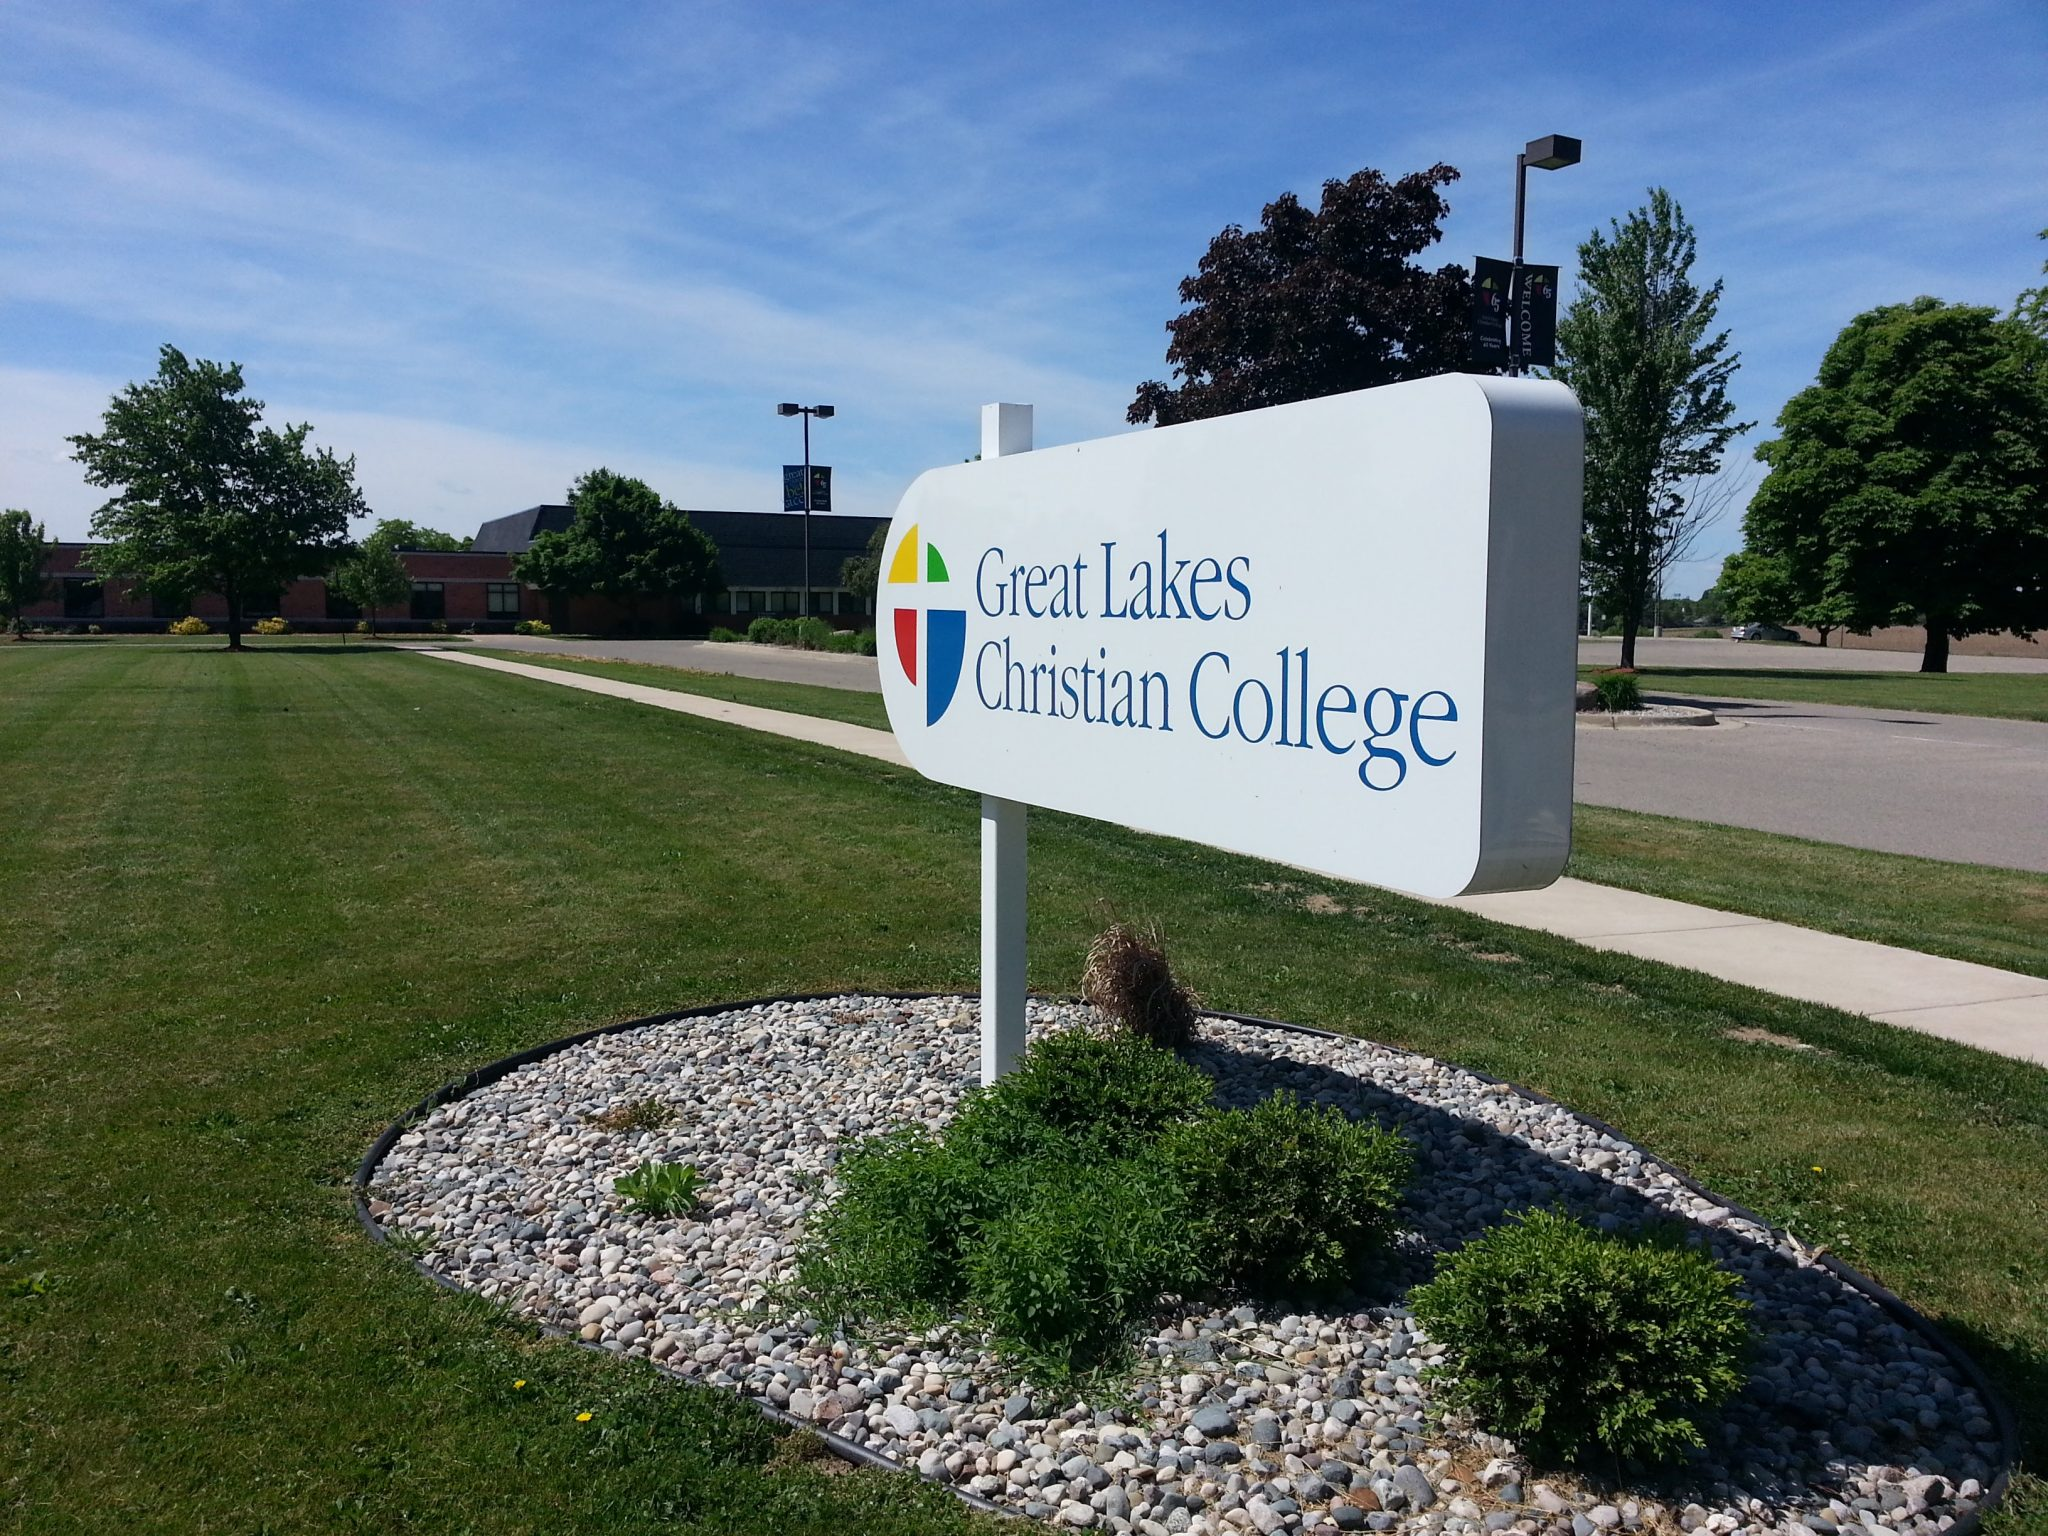 Great Lakes Christian College history